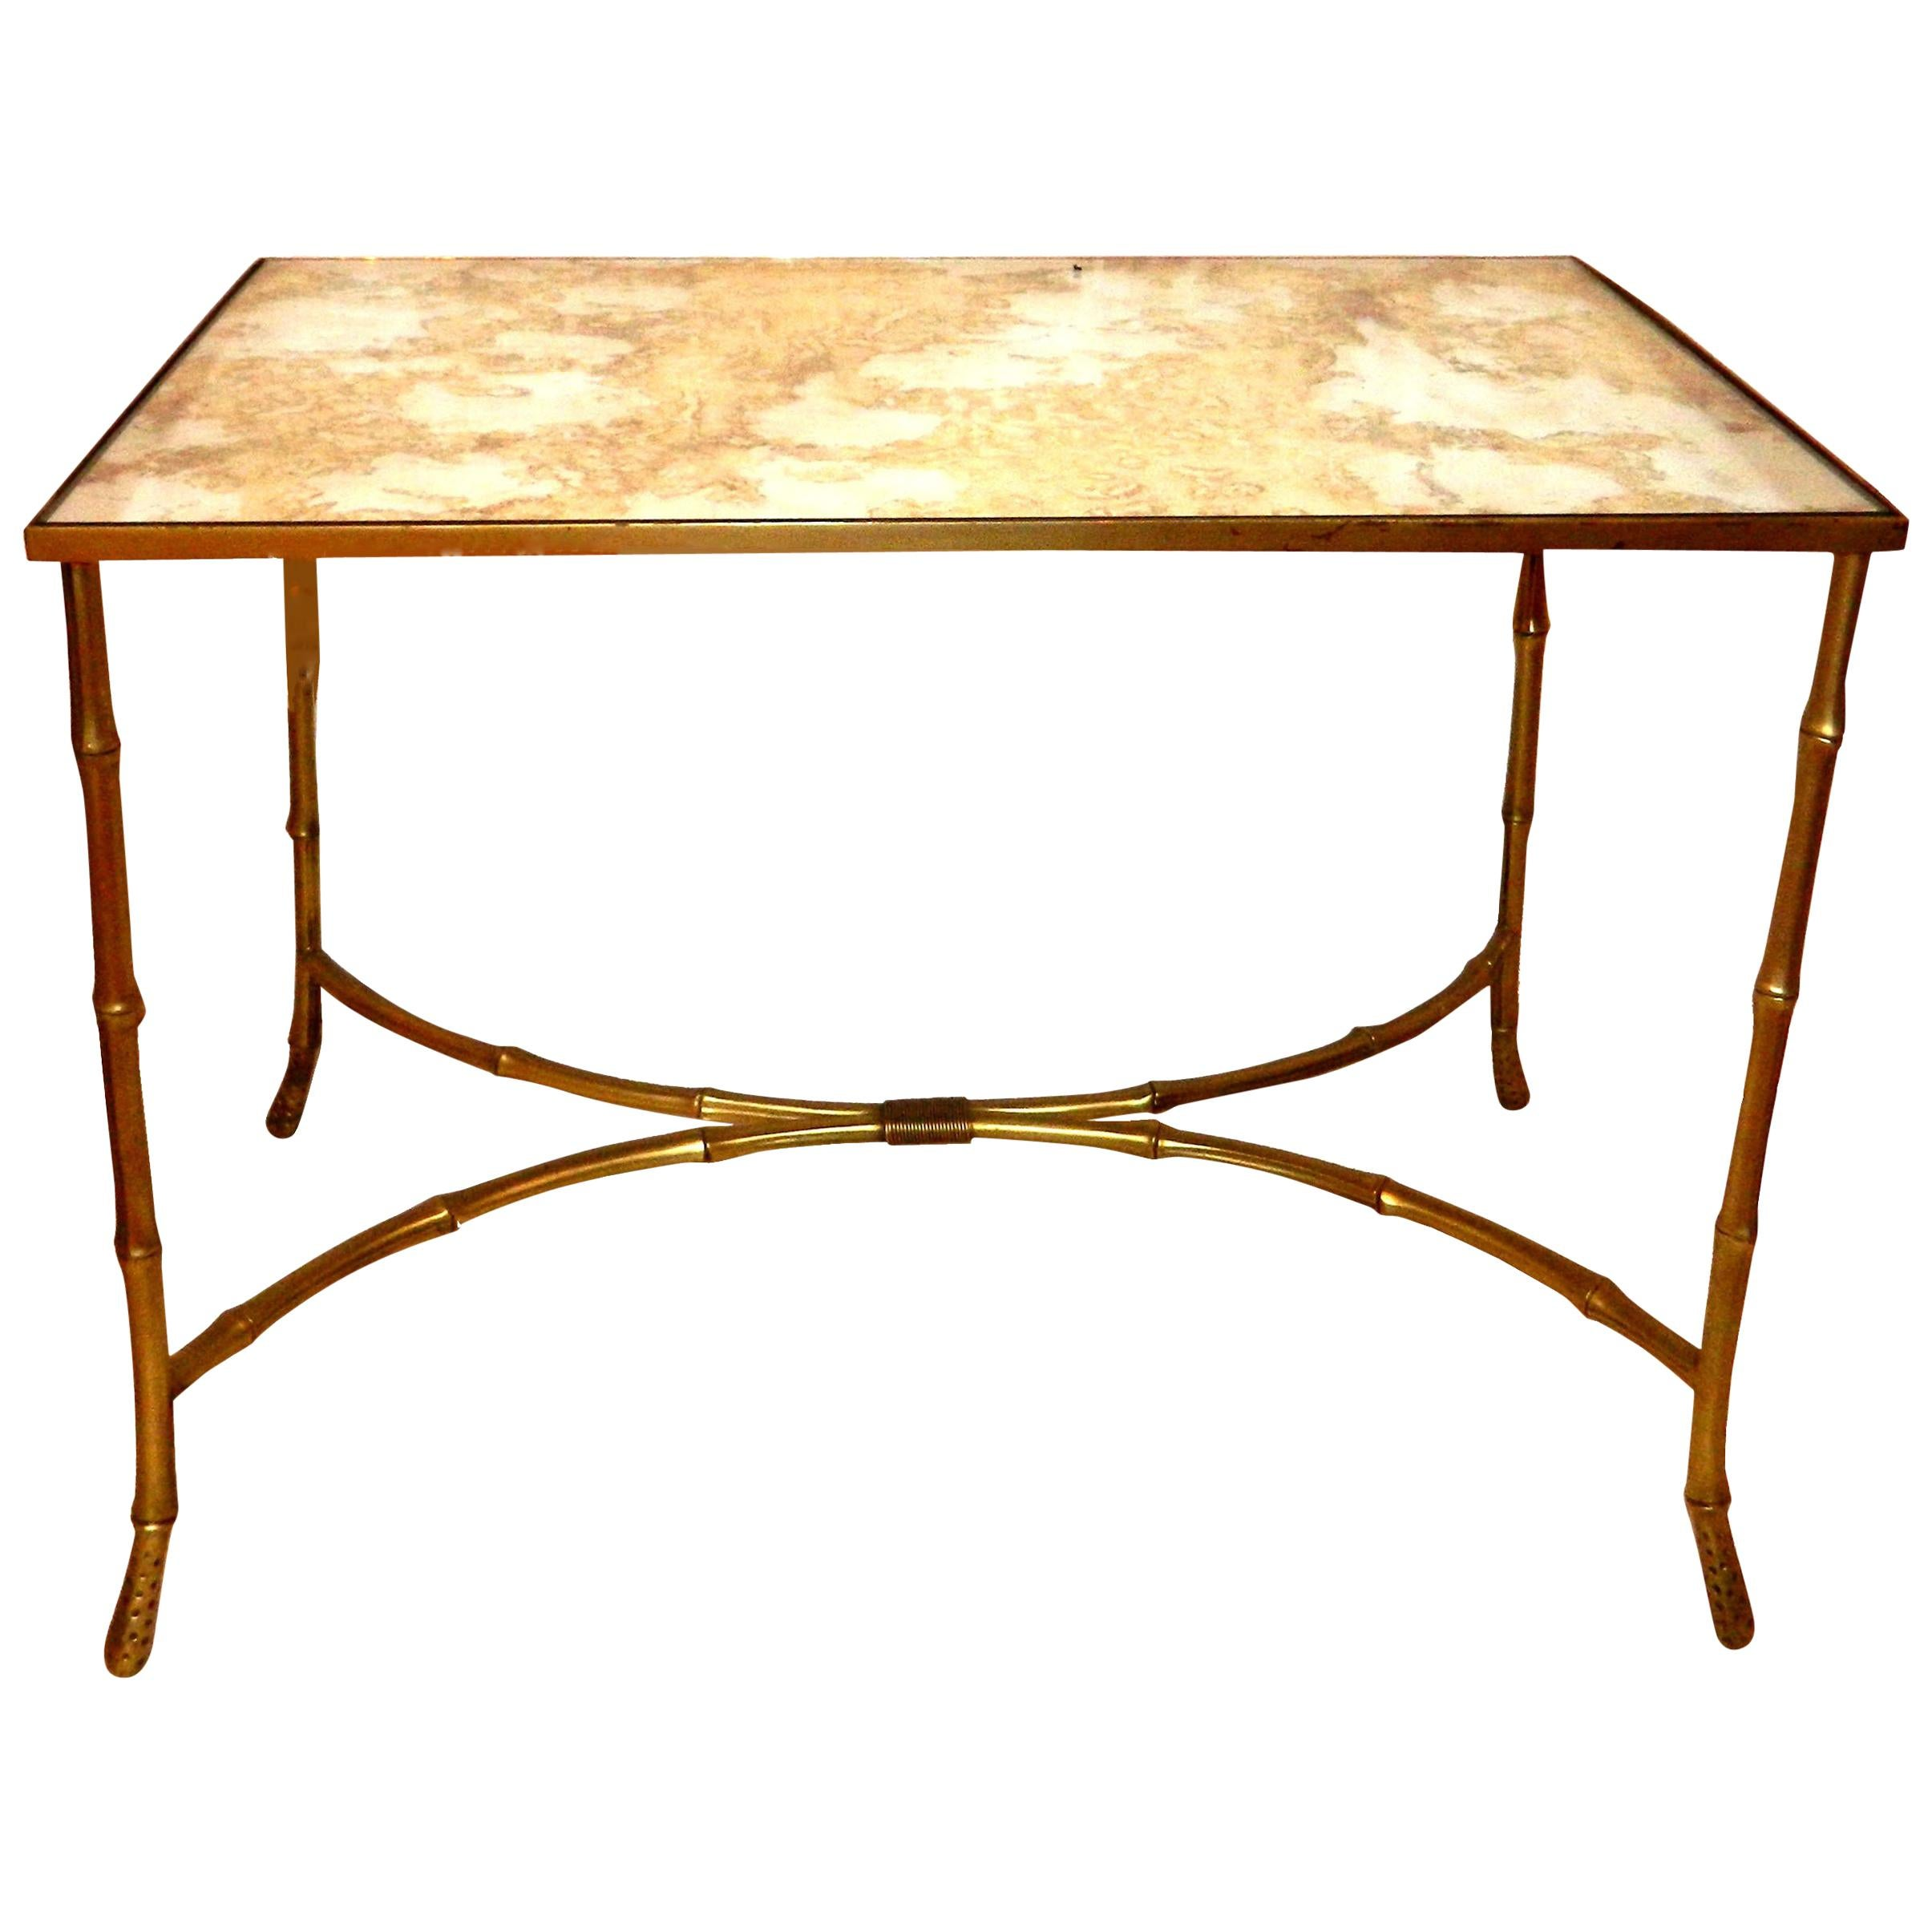 Maison Baguès French Neoclassical Bronze & Antique Glass Coffee Table 1950s